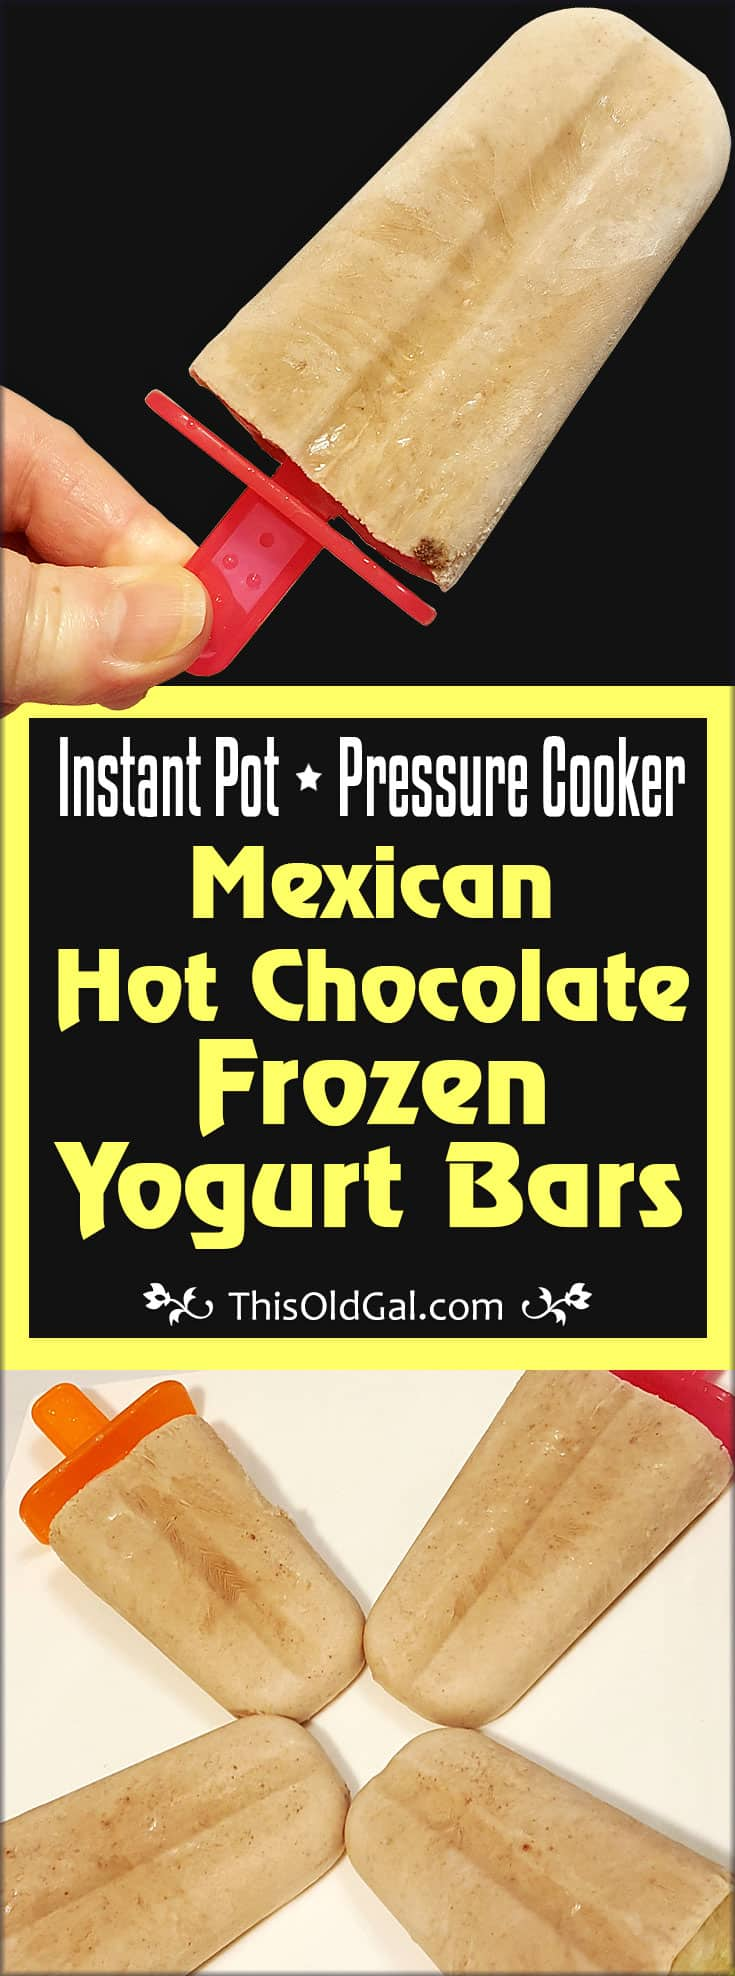 Instant Pot Mexican Hot Chocolate Frozen Yogurt Bars